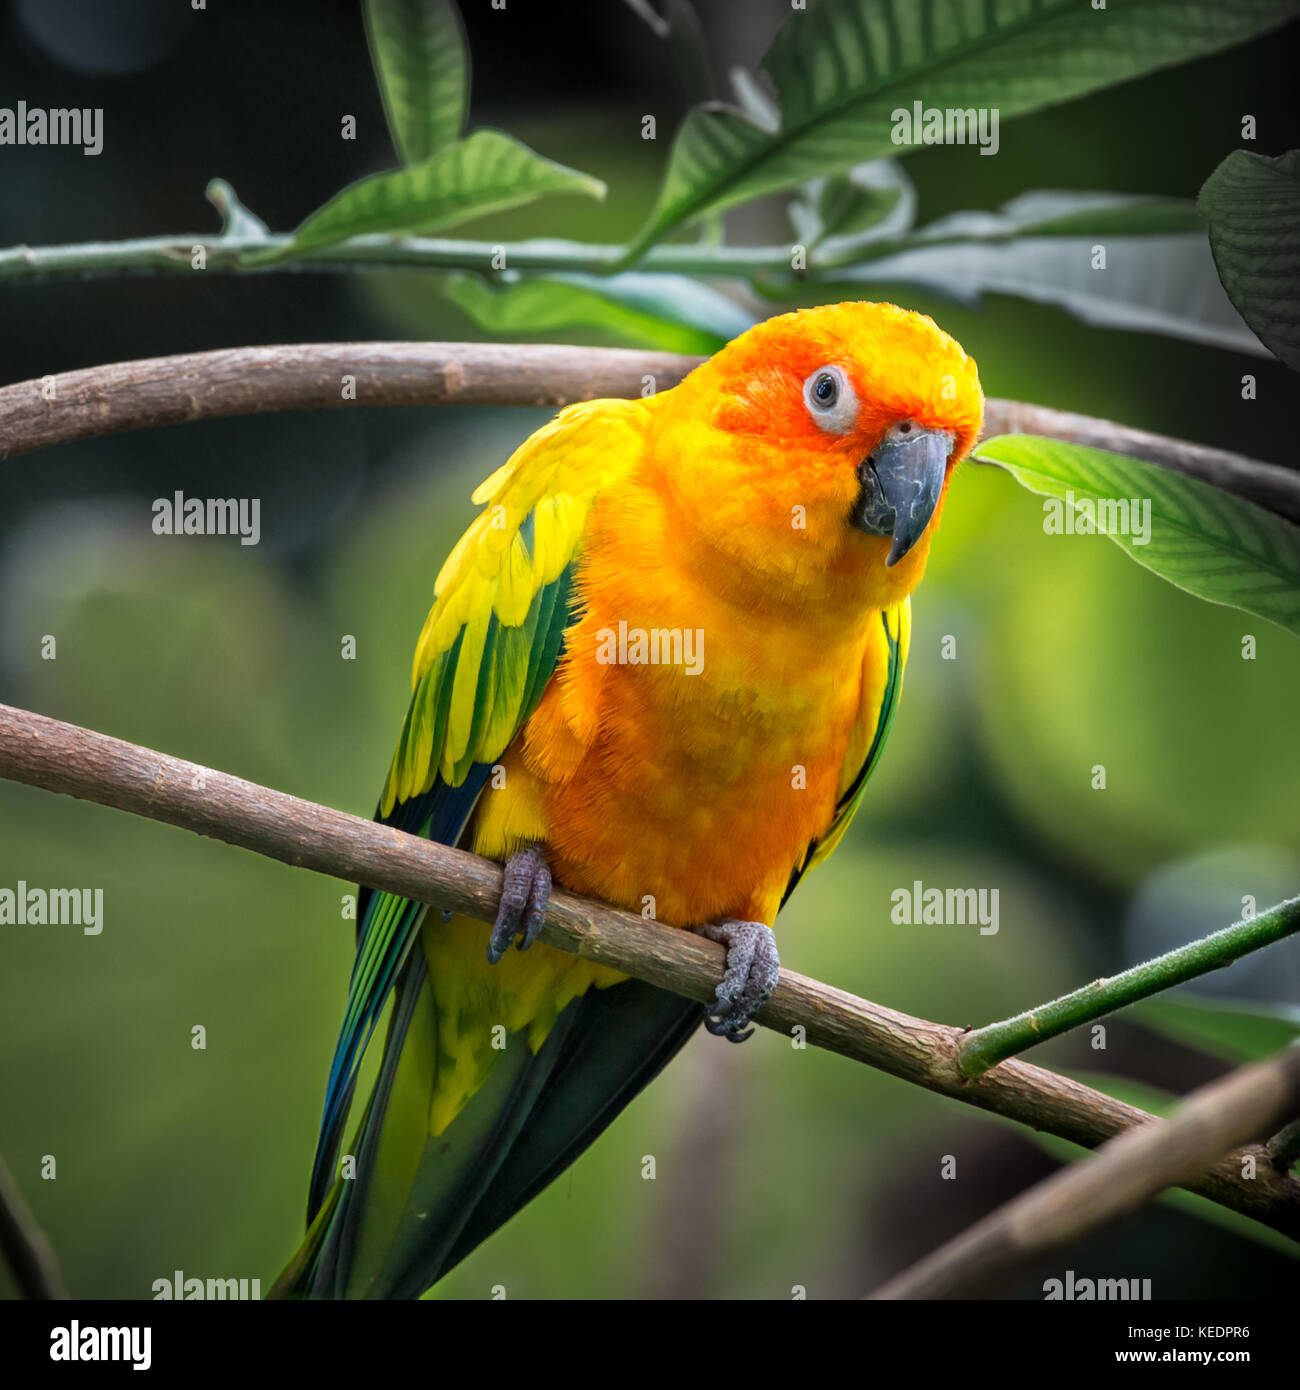 Sun Conure parrot (Aratinga solstitialis) perched on a branch in a tropical forest - Stock Image